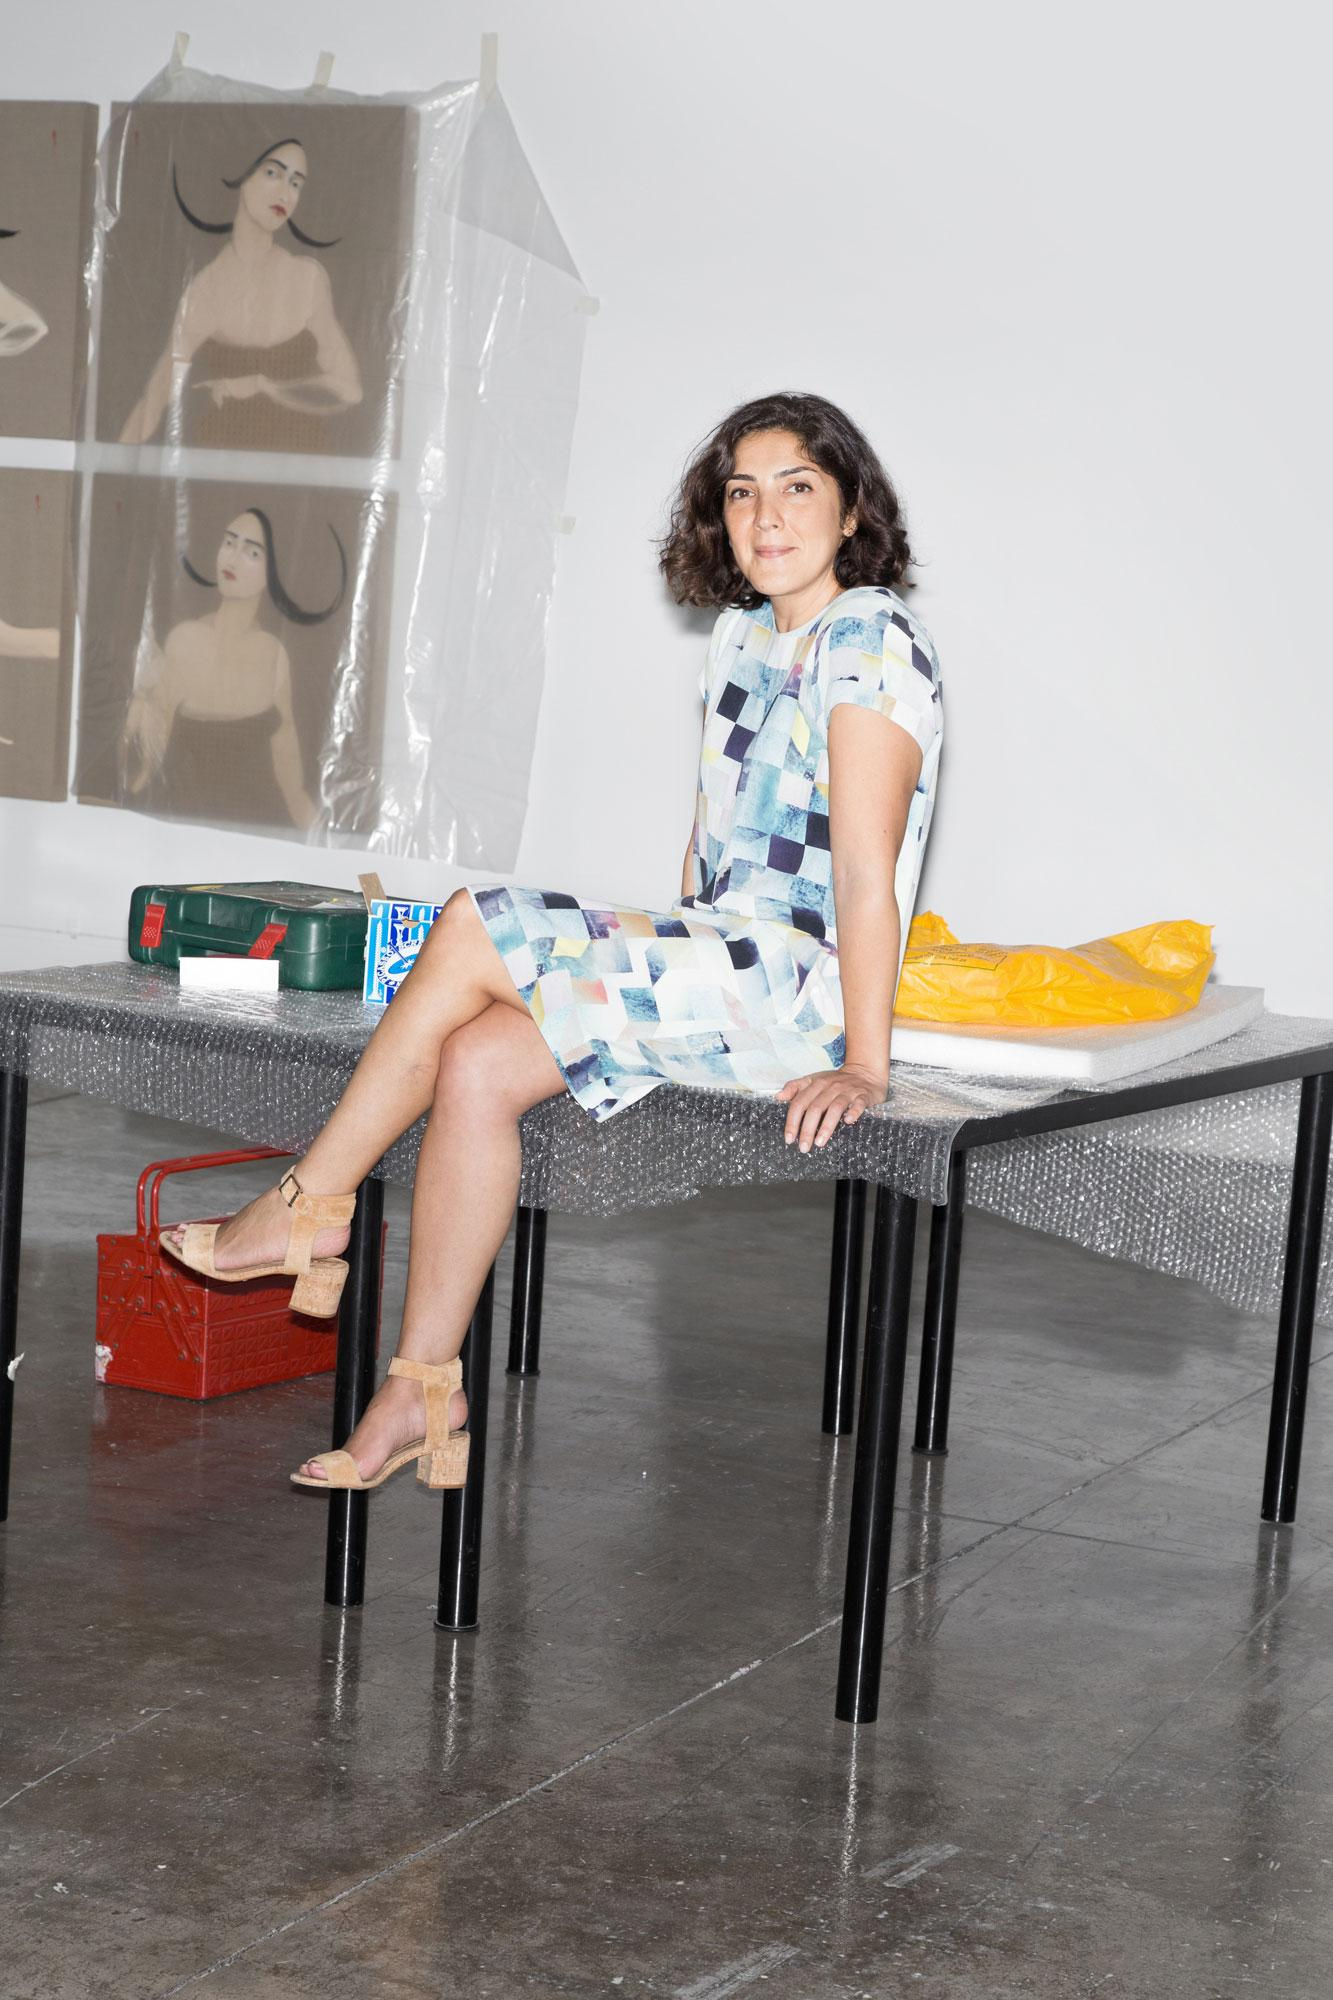 Sunny Rahbar, founder and director of The Third Line gallery